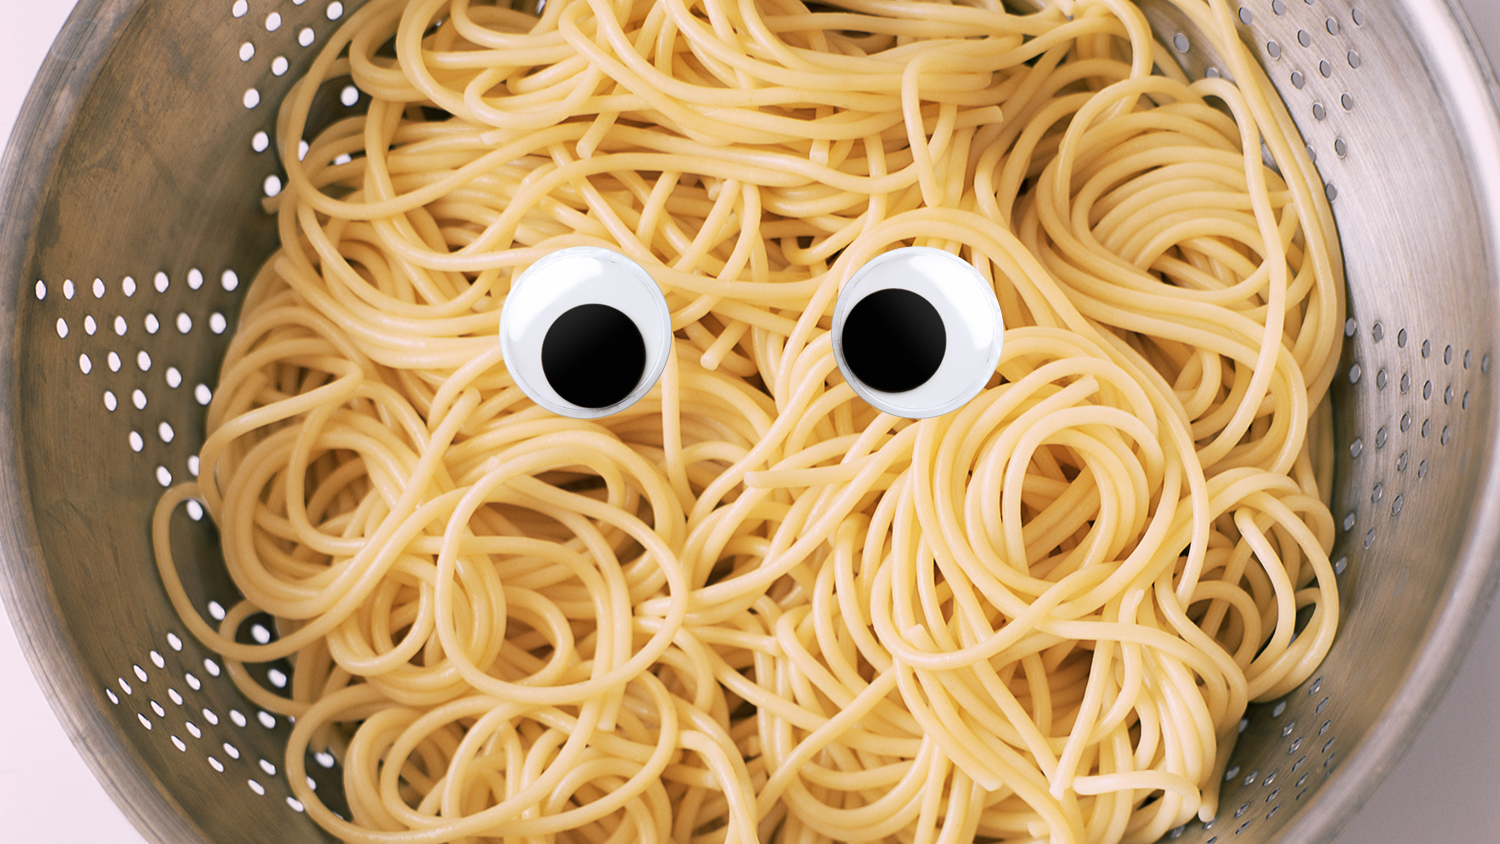 Follower of Flying Spaghetti Monster Allowed to Wear Pasta Strainer for Driver's License Photo